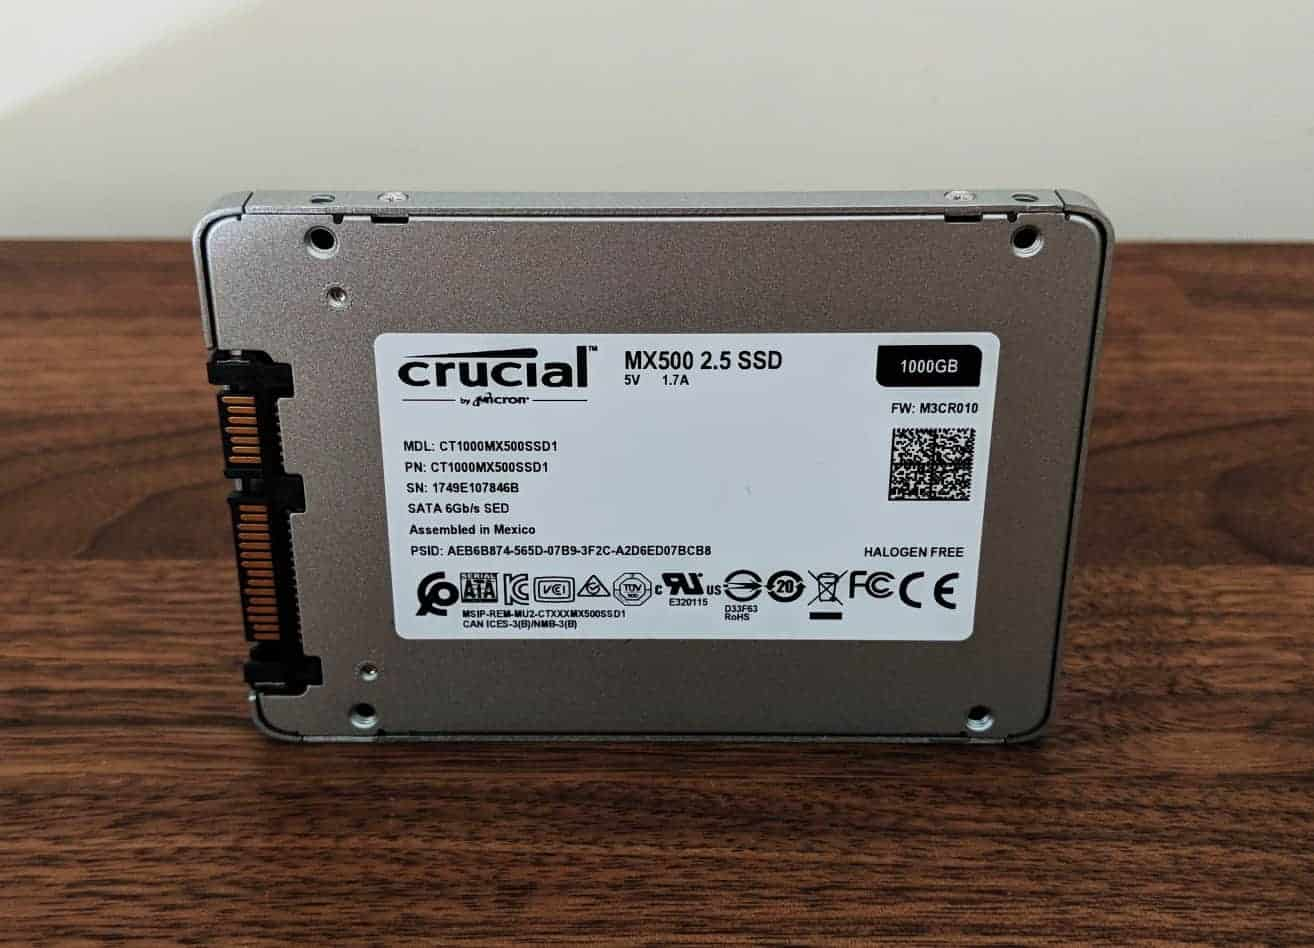 Crucial-MX500-1TB-Photos08 Crucial MX500 1TB SSD Review